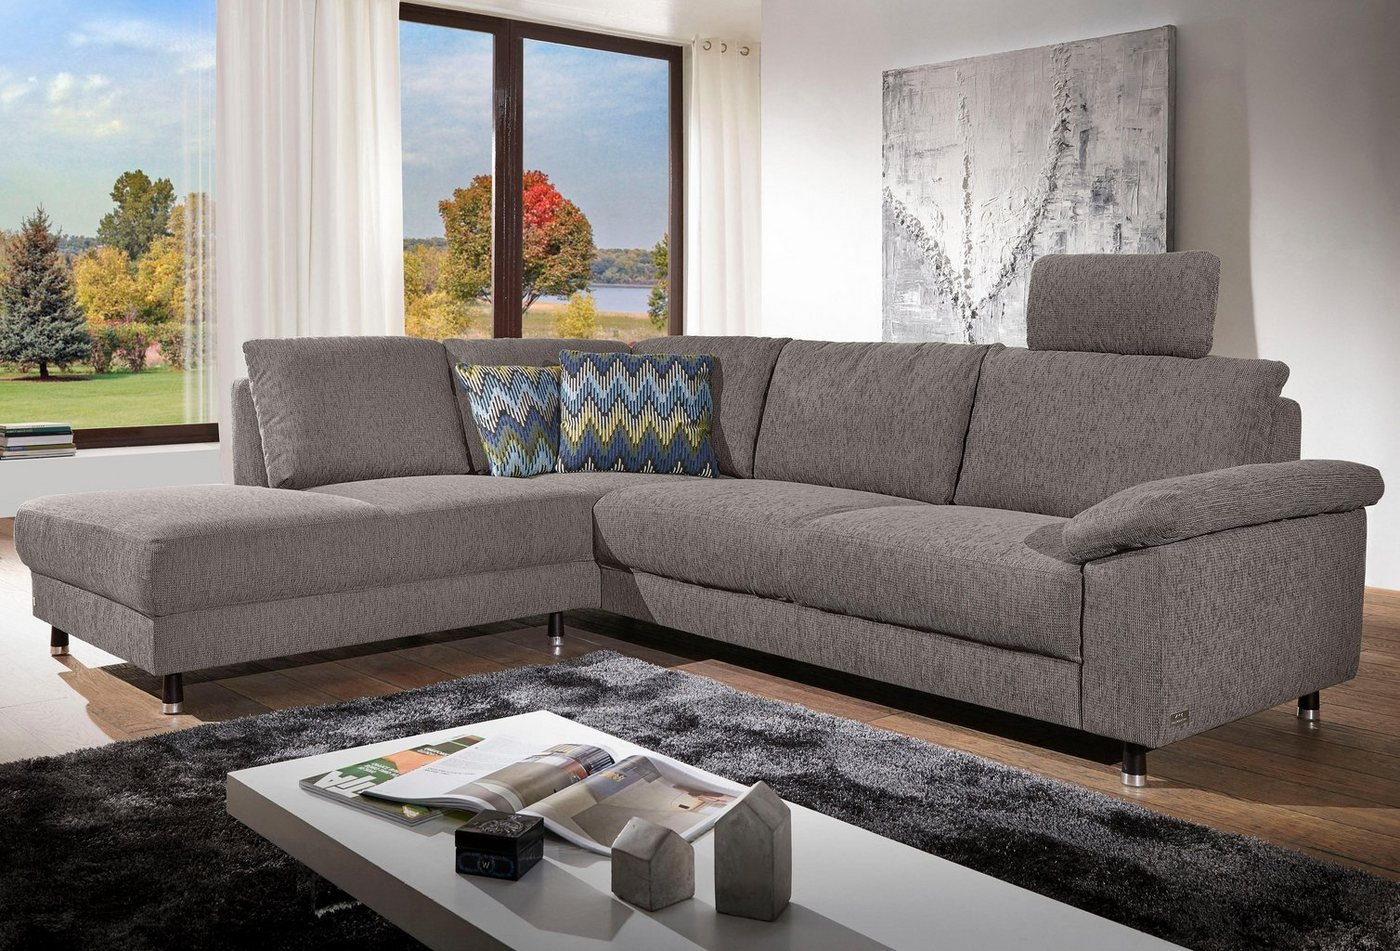 sofa abnehmbarer bezug latest fesselnd modulares sofa mit abnehmbarem bezug with sofa. Black Bedroom Furniture Sets. Home Design Ideas